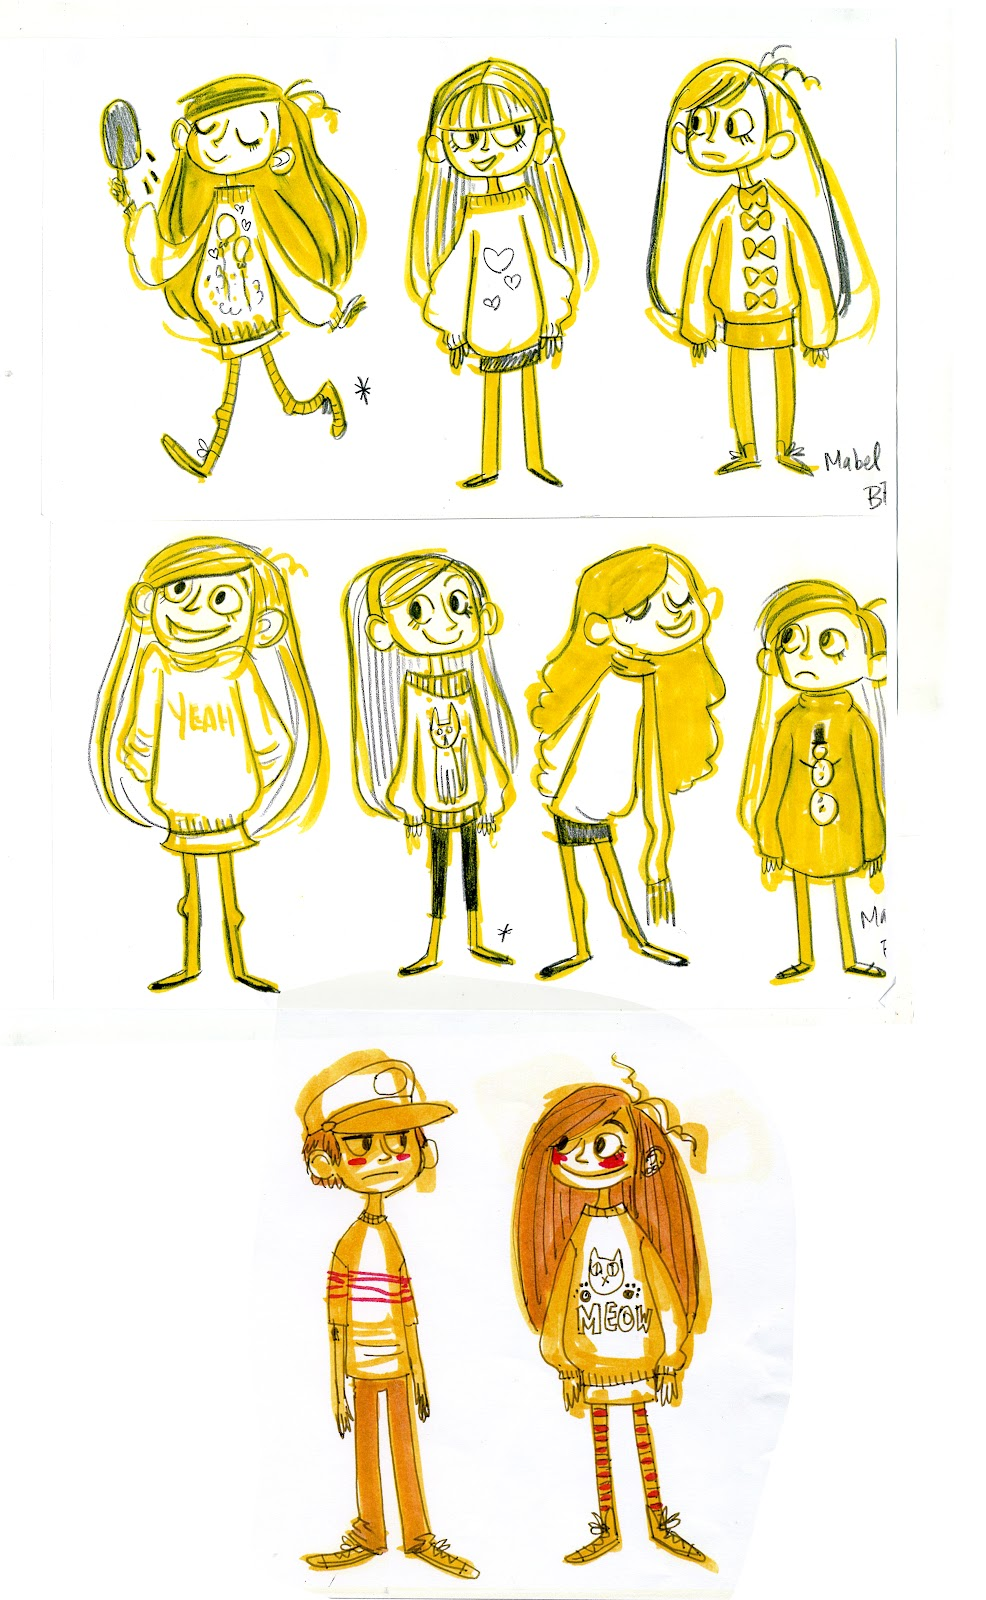 Brigette Barrager Posted A Big Gallery Of Early Gravity Falls Concept Art Including These Mabel Designs